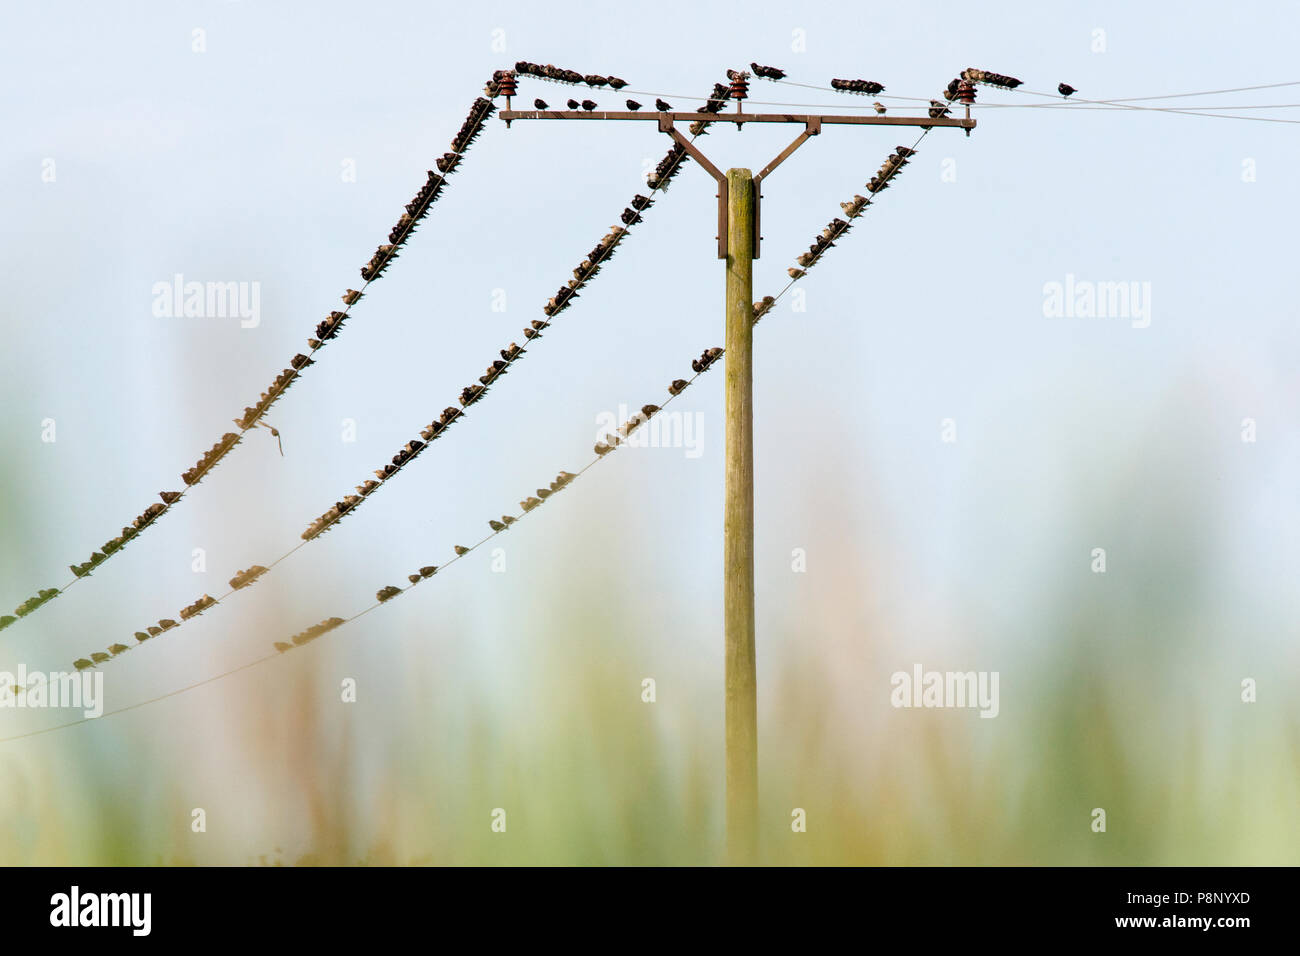 Large group of common starlings assembled on electricity pole and (its) power lines - Stock Image